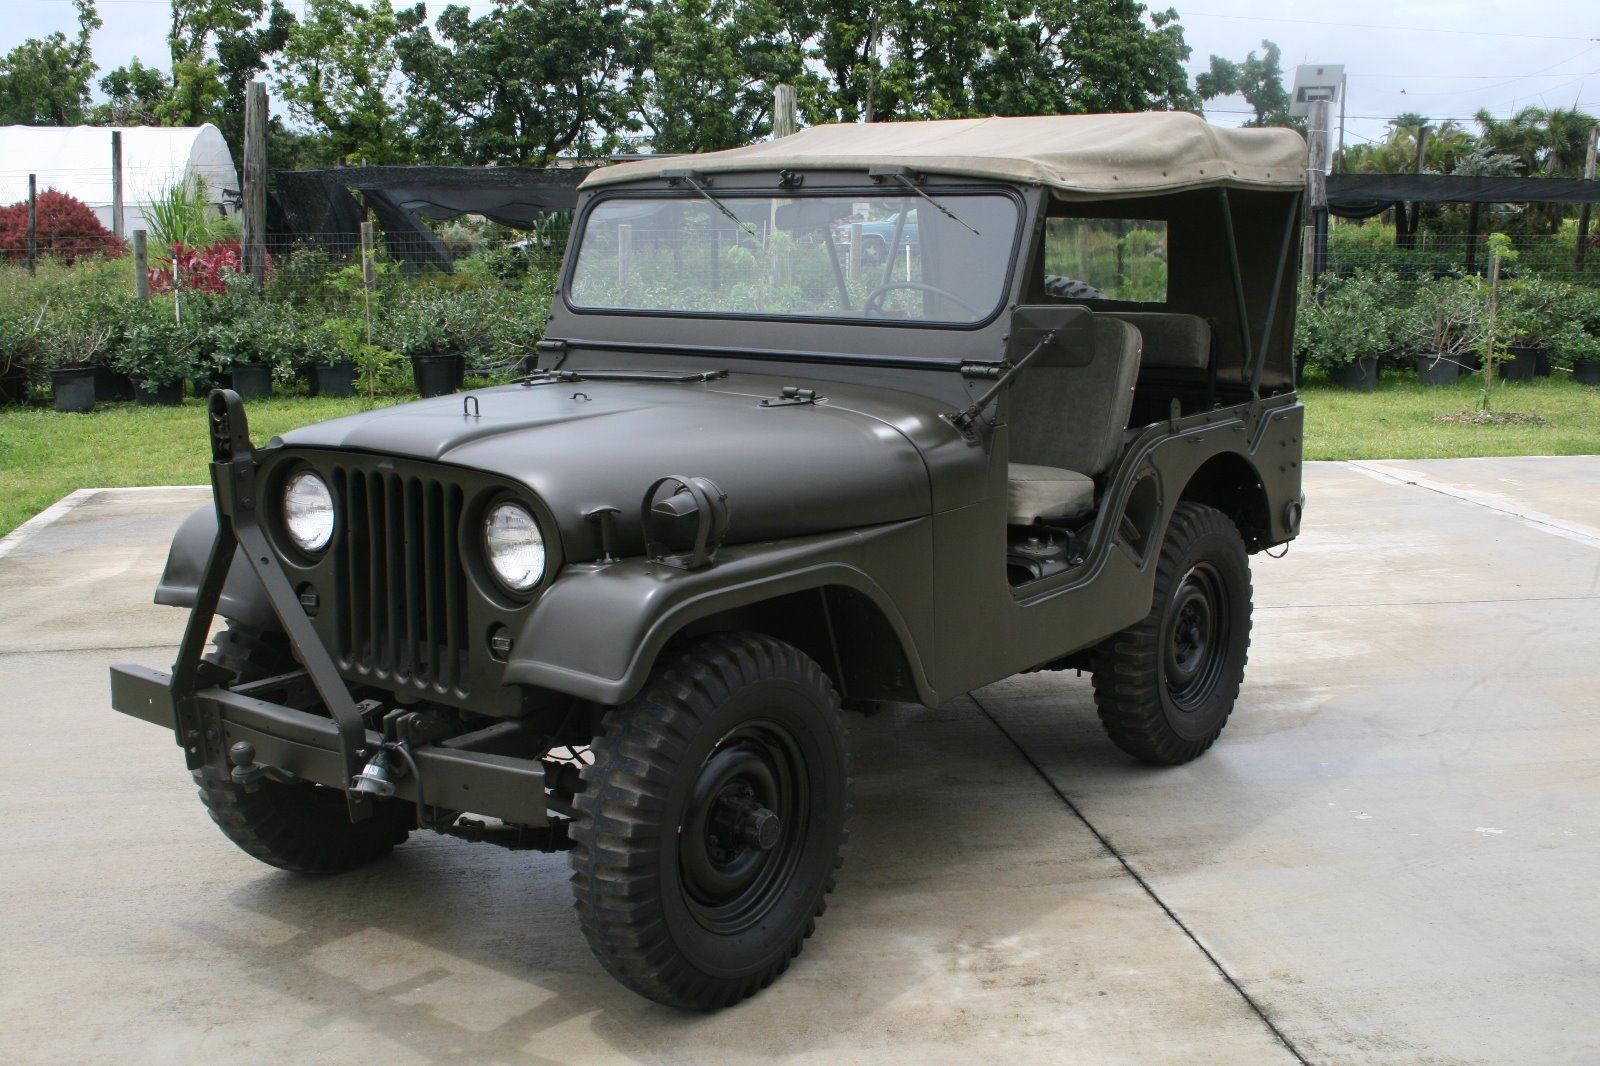 movie car 1953 willys jeep m38a1 military [ 1600 x 1066 Pixel ]